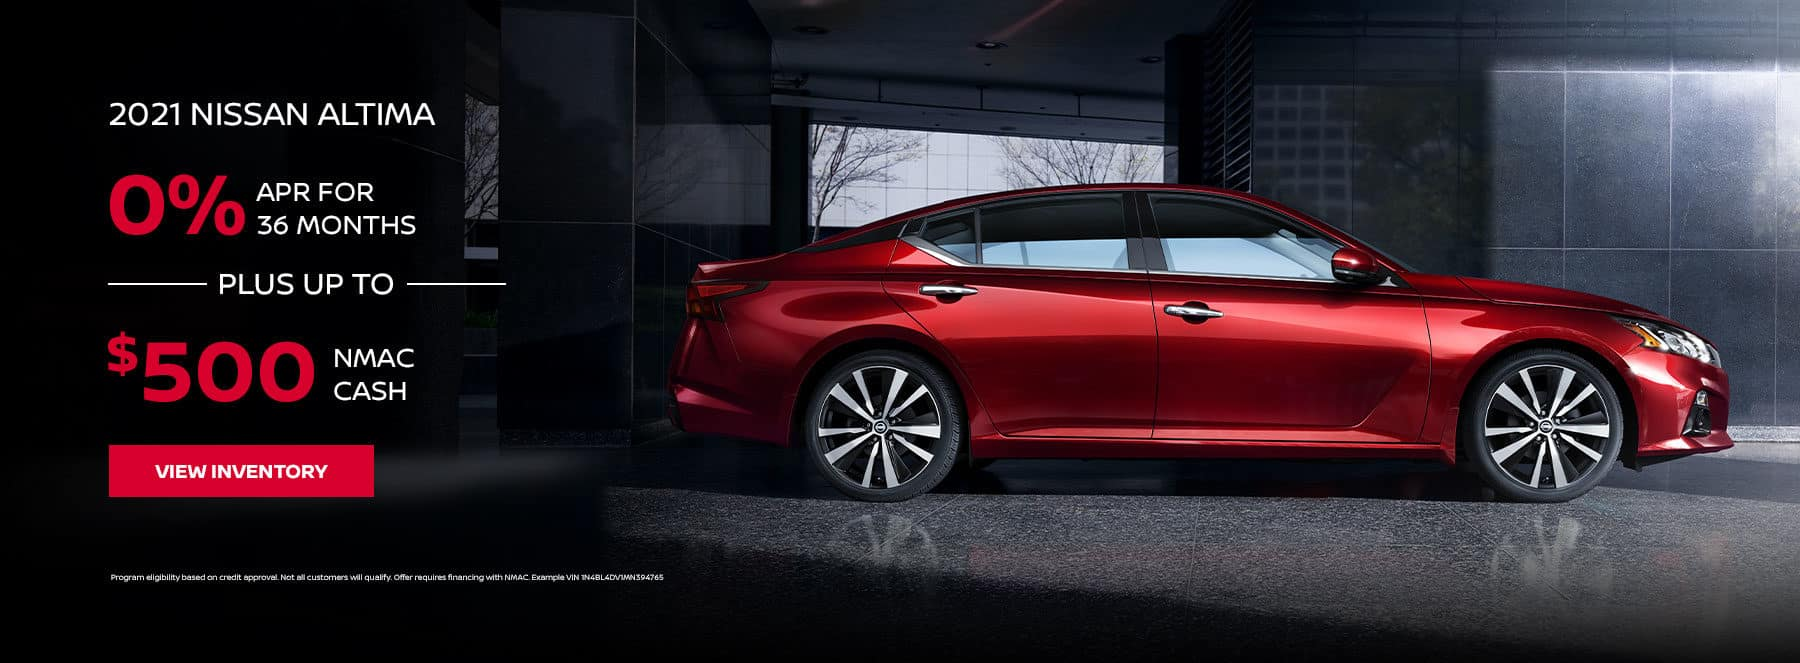 2021 NISSAN ALTIMA, 0% APR For 36 Months + Up to $500 NMAC cash